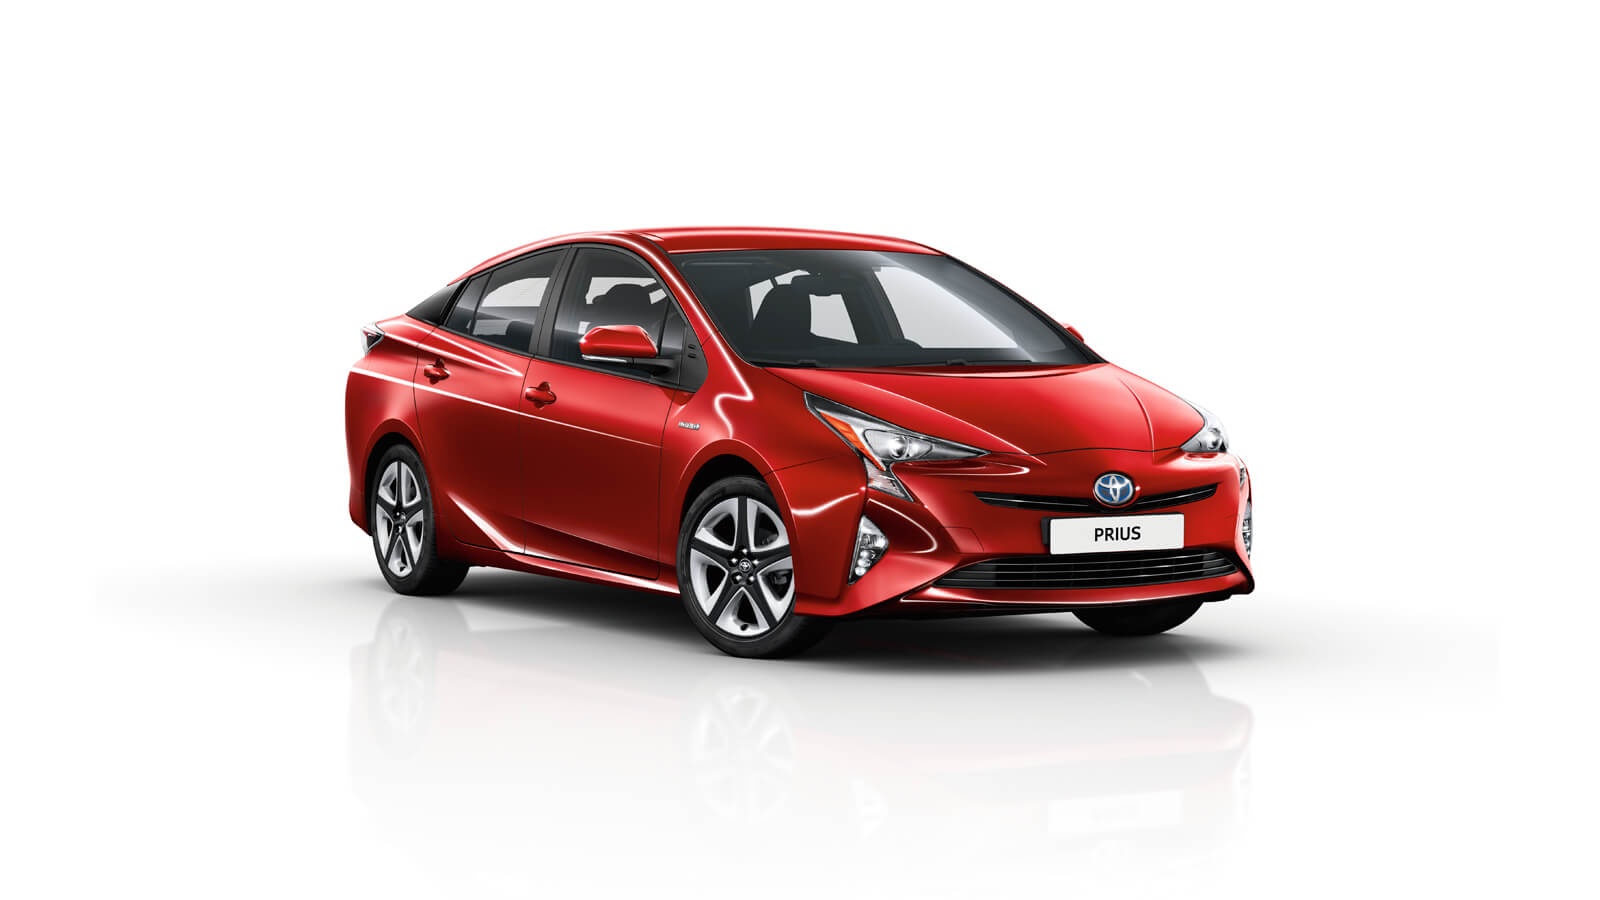 new prius models features donnelly taggart. Black Bedroom Furniture Sets. Home Design Ideas